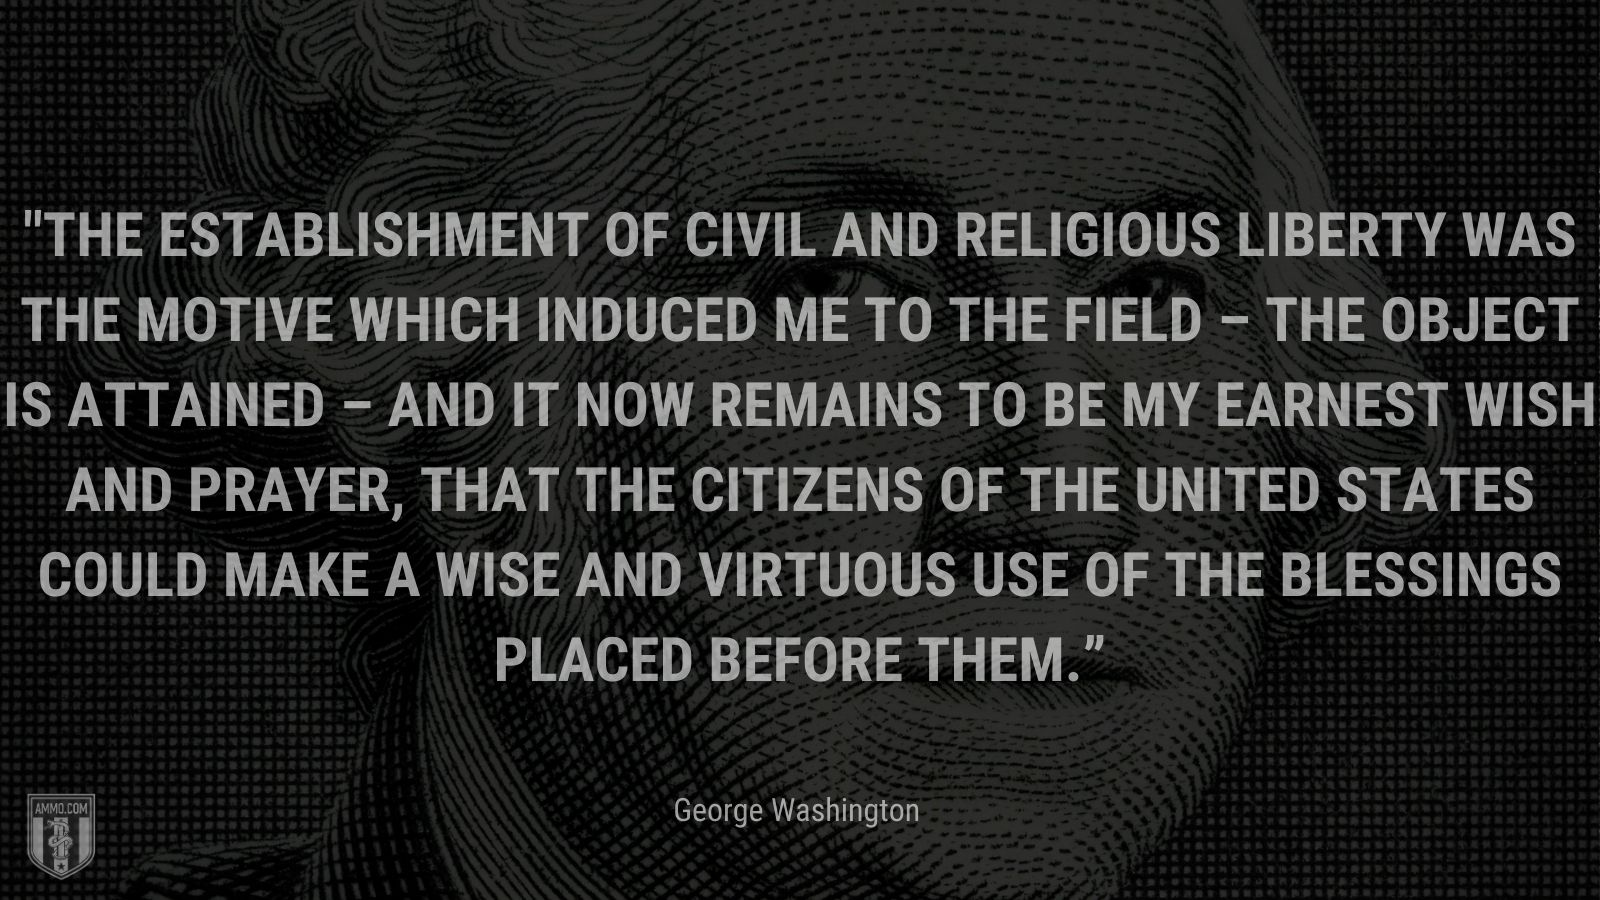 """""""The establishment of Civil and Religious Liberty was the Motive which induced me to the Field – the object is attained – and it now remains to be my earnest wish and prayer, that the Citizens of the United States could make a wise and virtuous use of the blessings placed before them."""" - George Washington"""